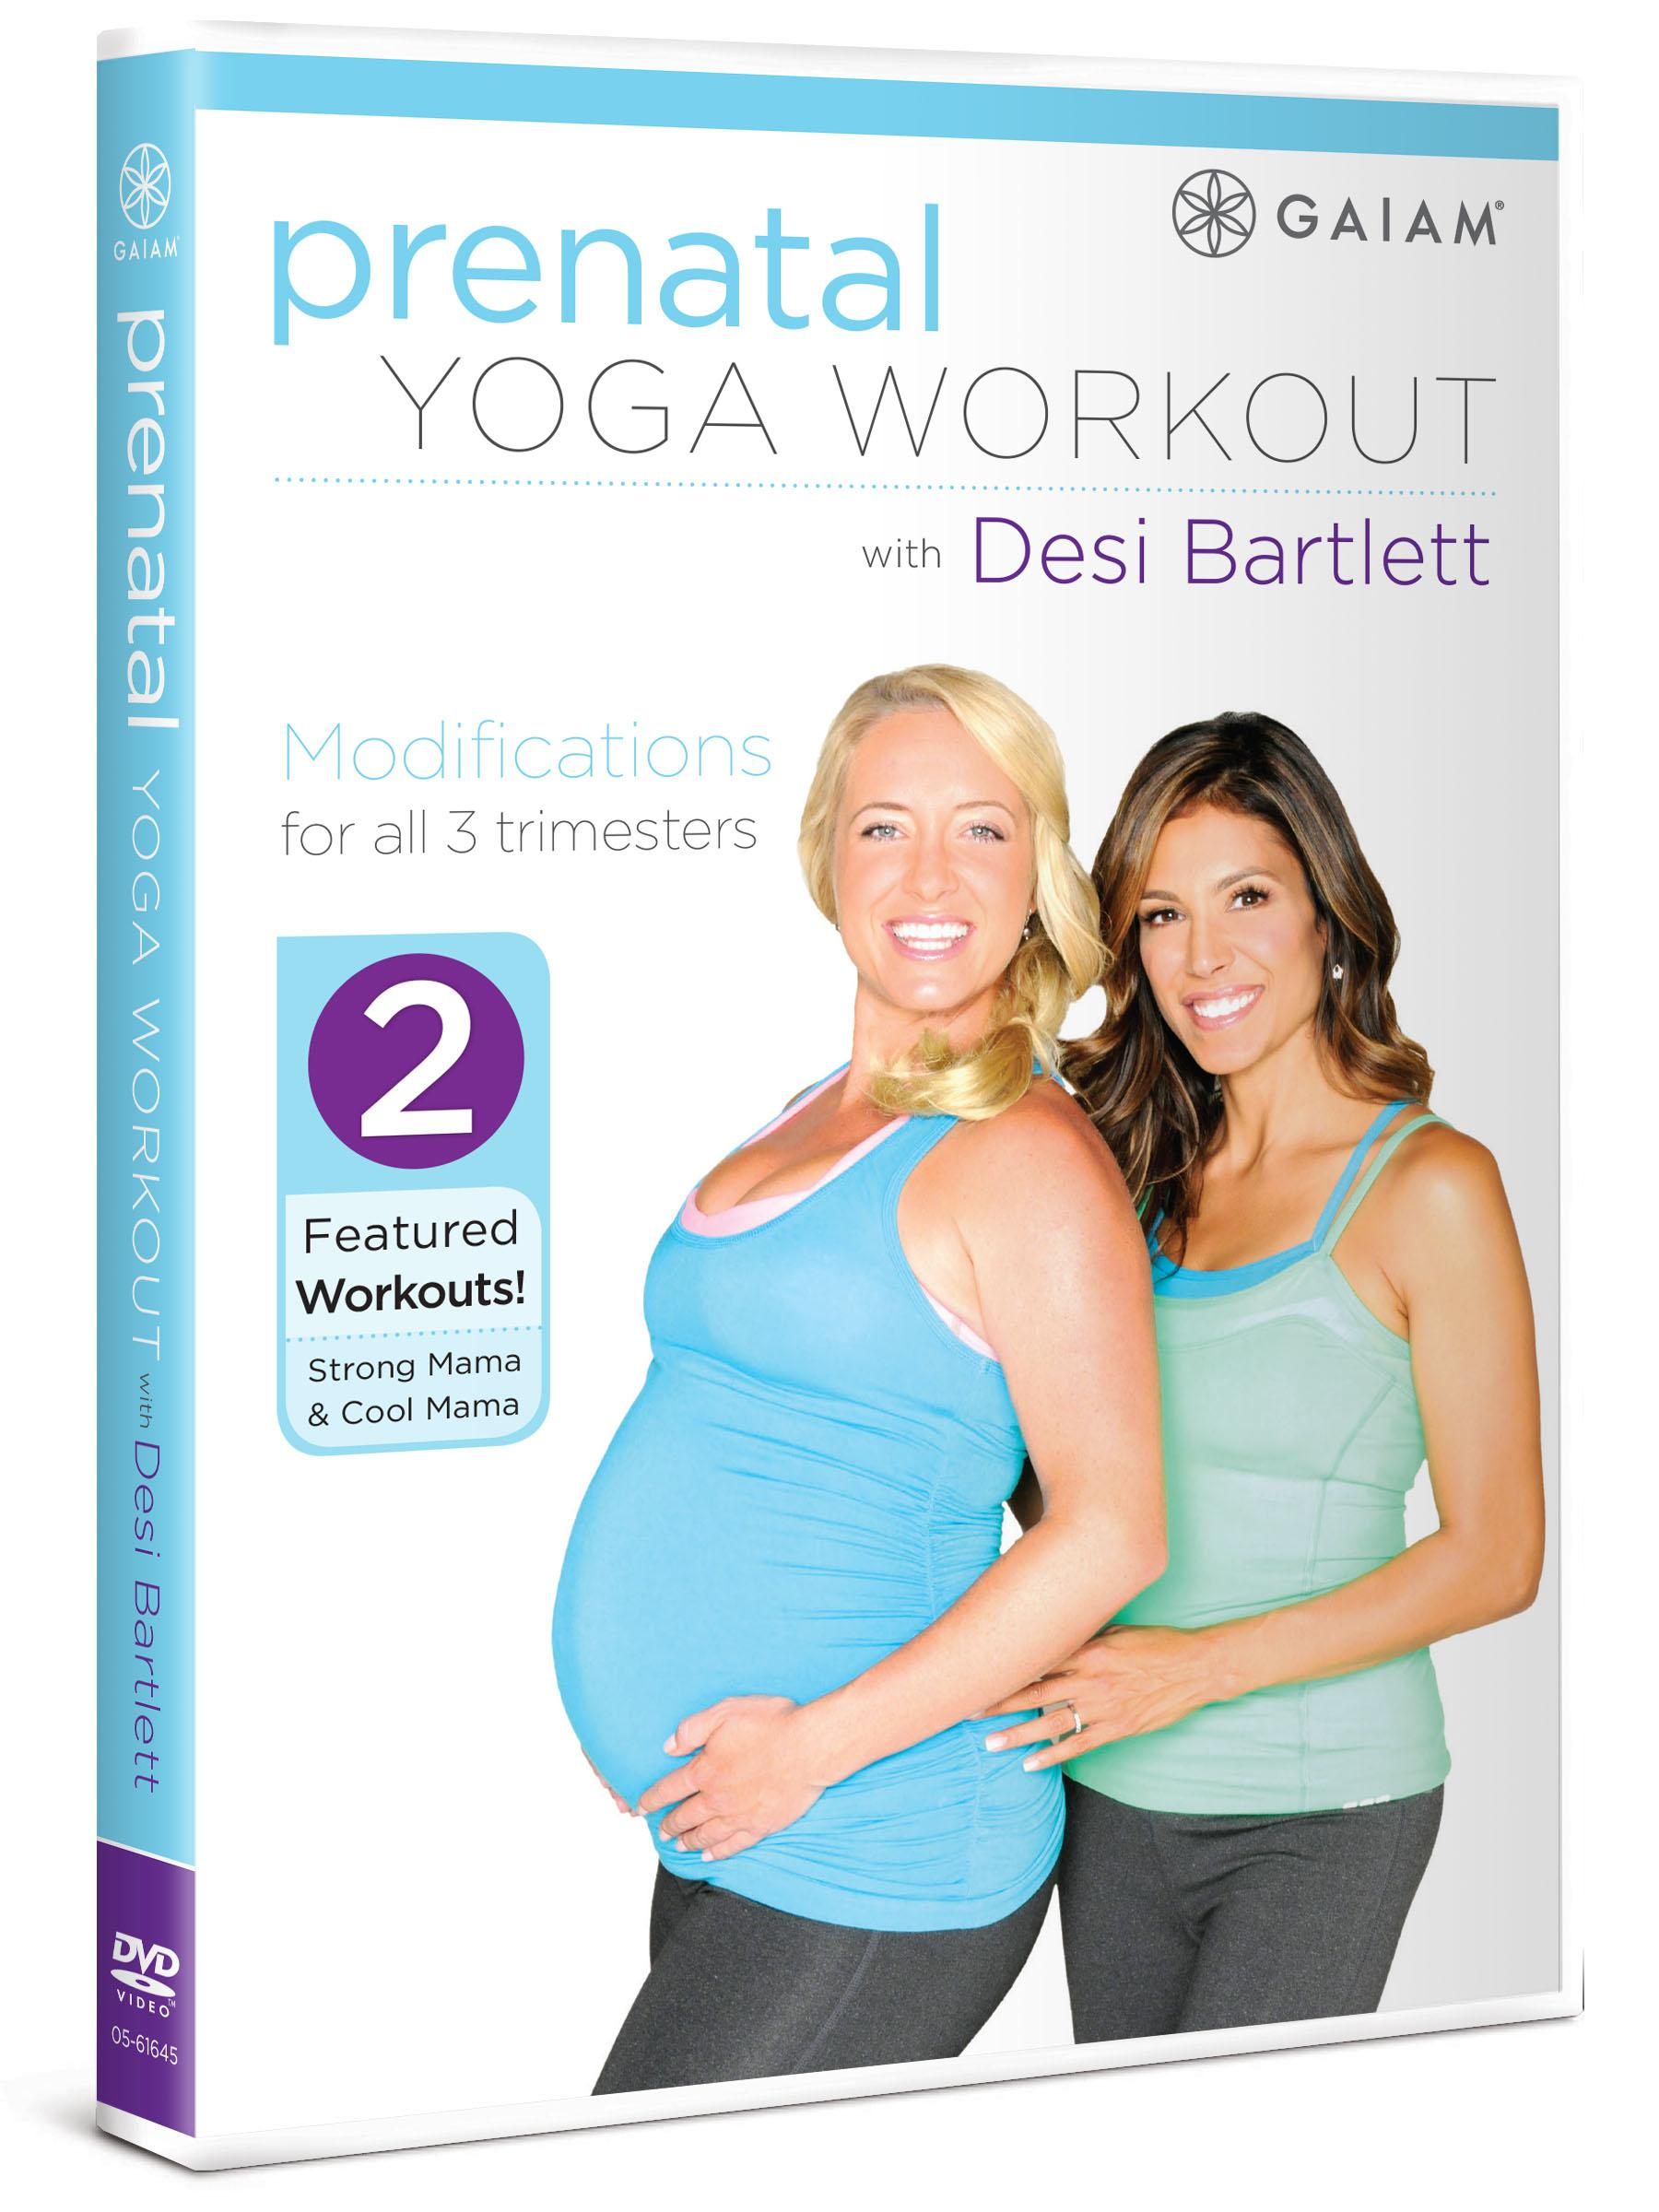 Amazon.com: Prenatal Yoga Workout with Desi Bartlett: Desi ...